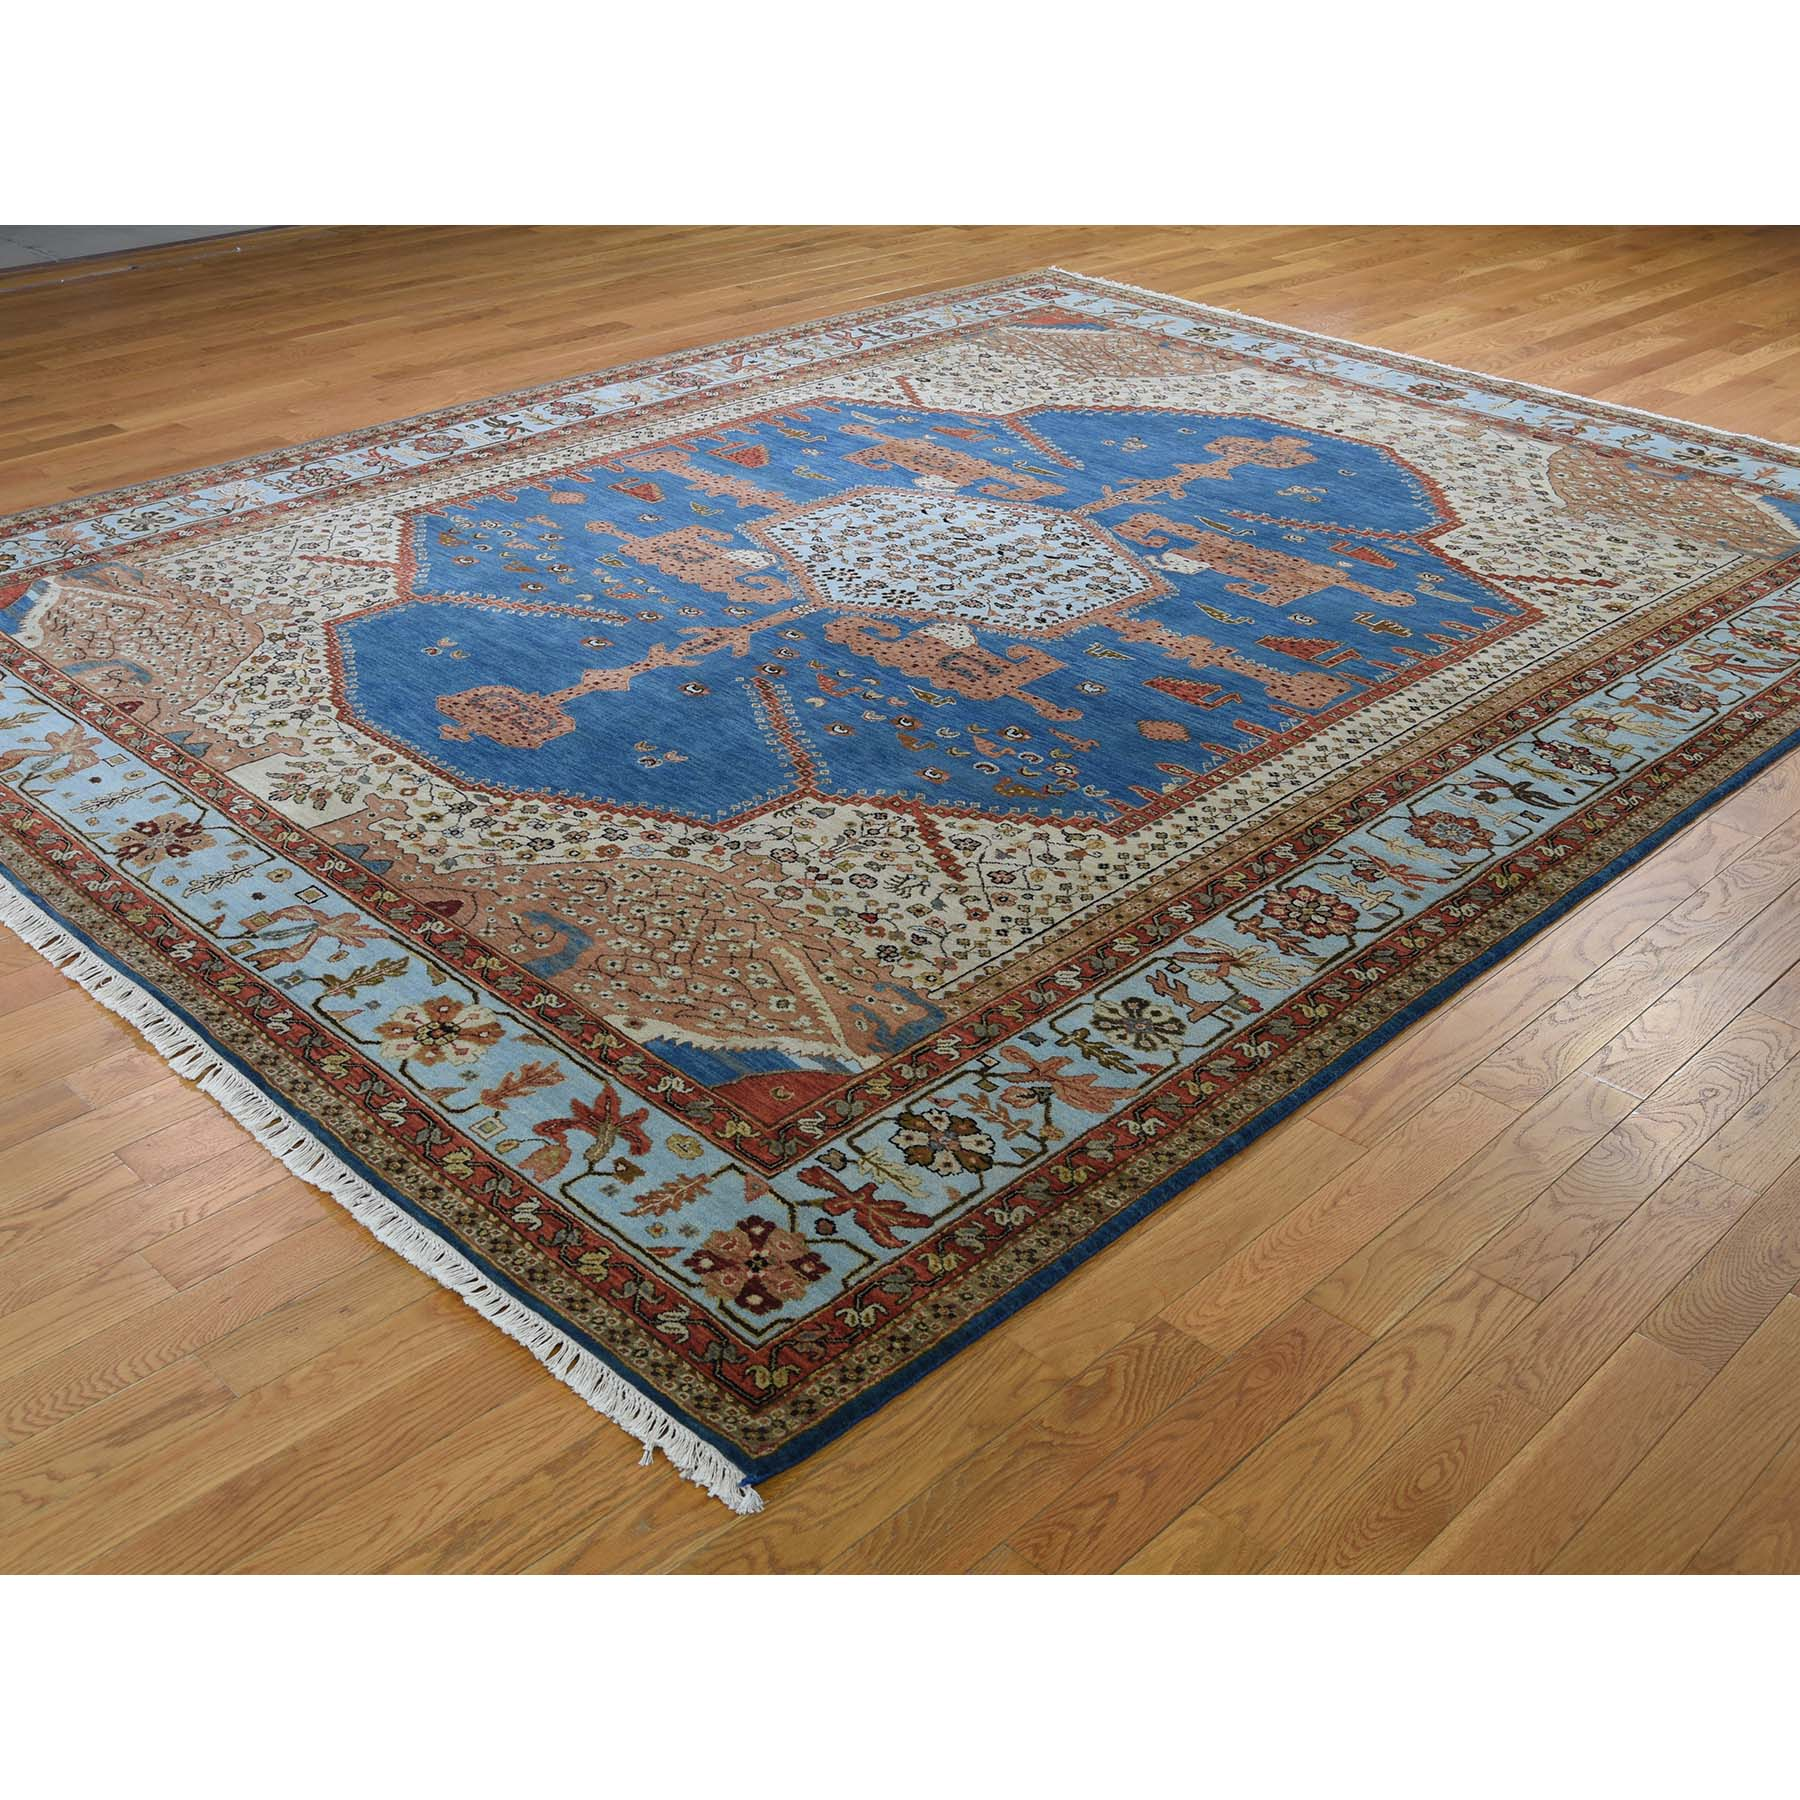 "Handmade Heriz Rectangle Rug > Design# SH43638 > Size: 9'-2"" x 11'-7"" [ONLINE ONLY]"